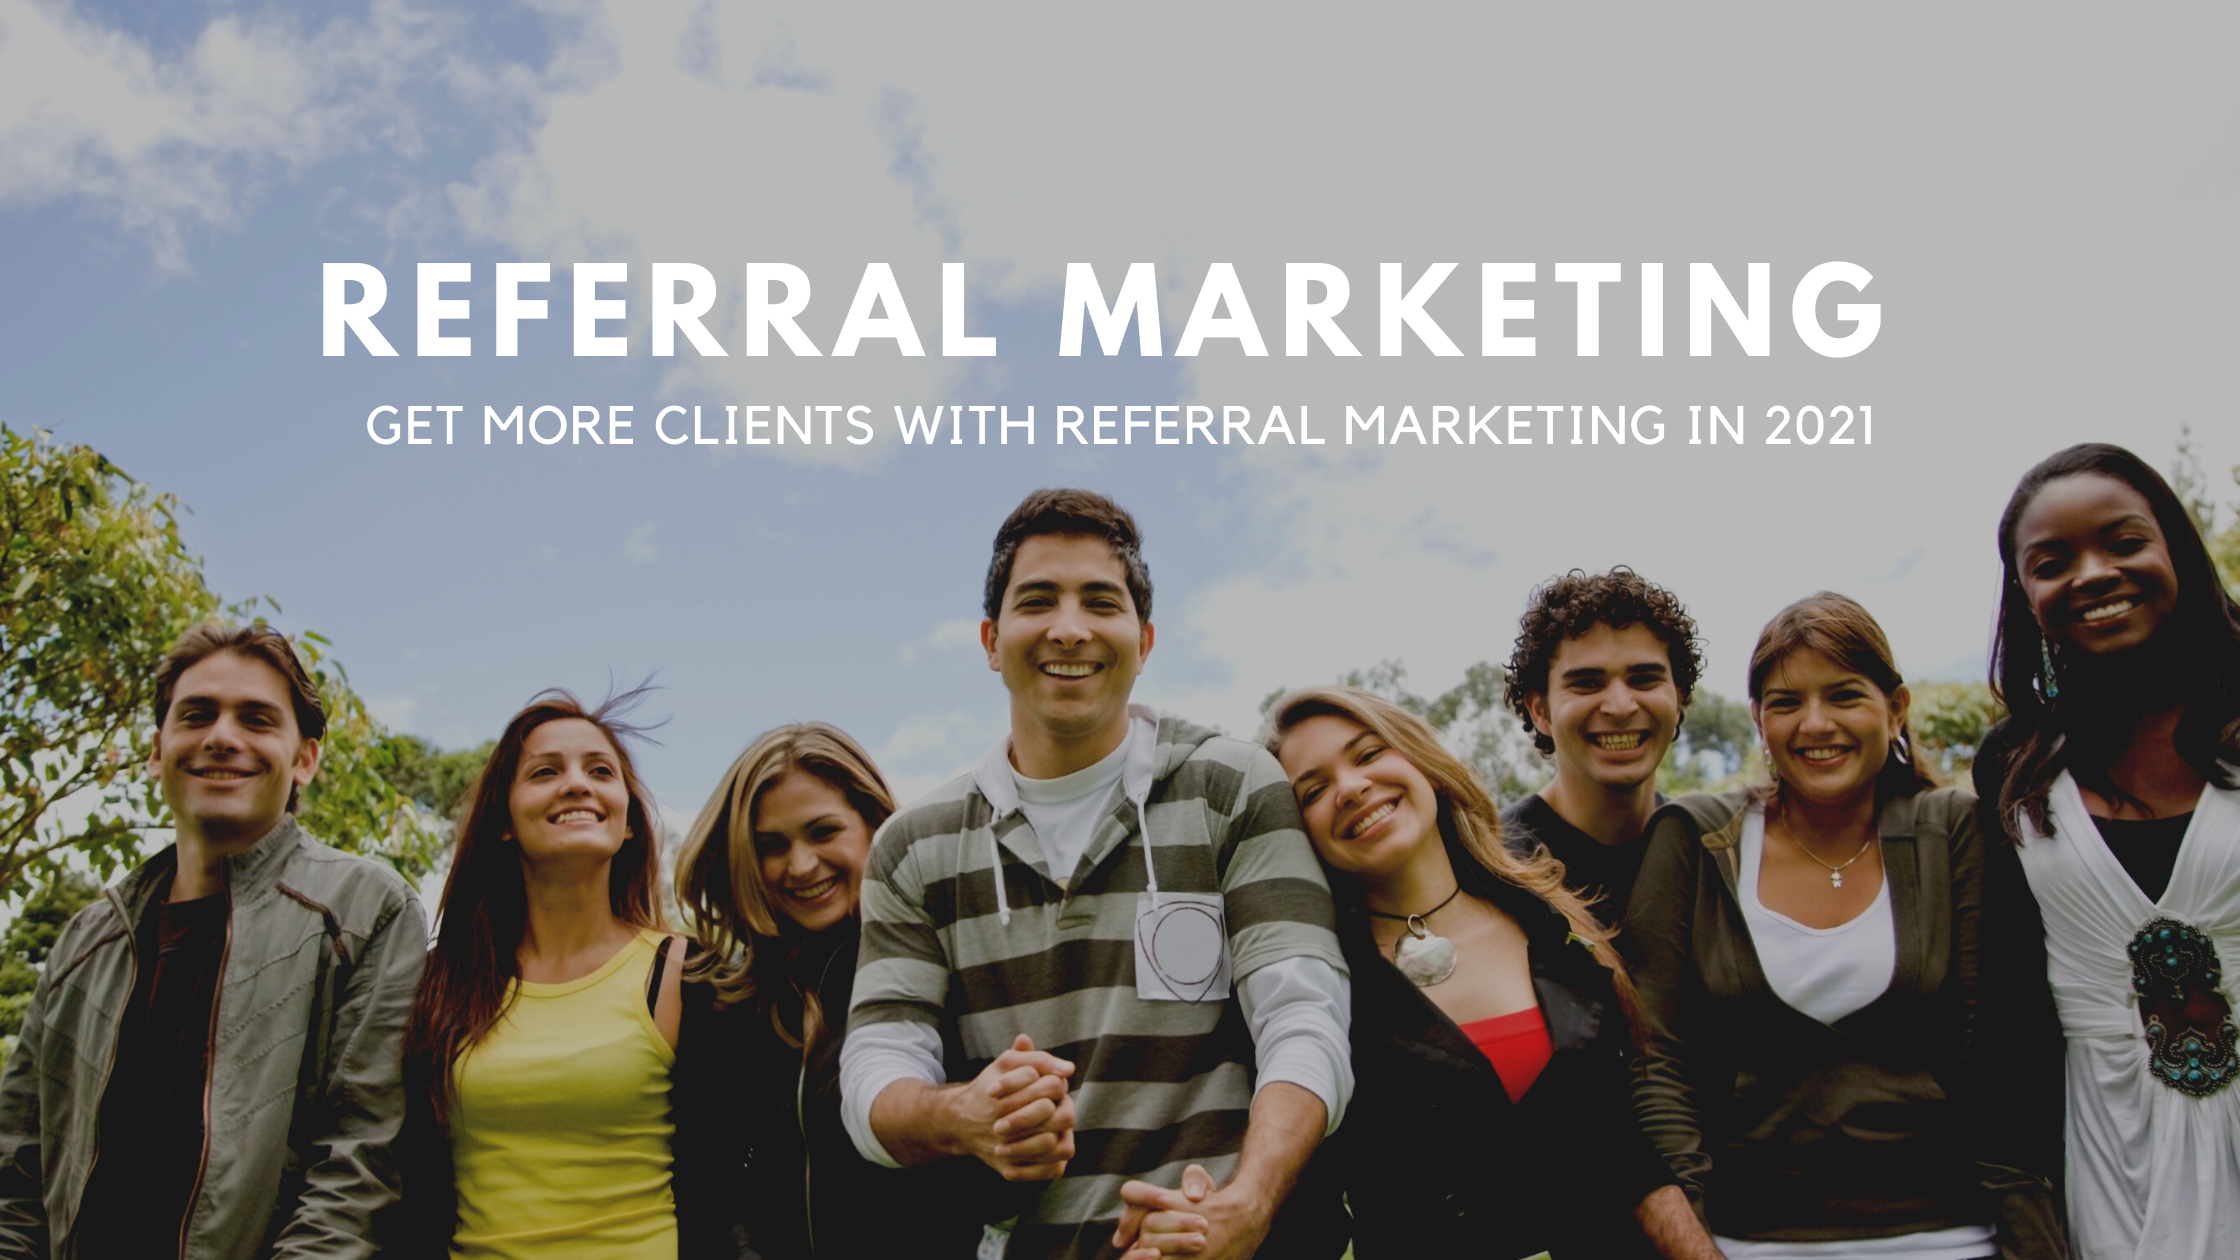 10 Ways To Get More Clients With Referral Marketing in 2021